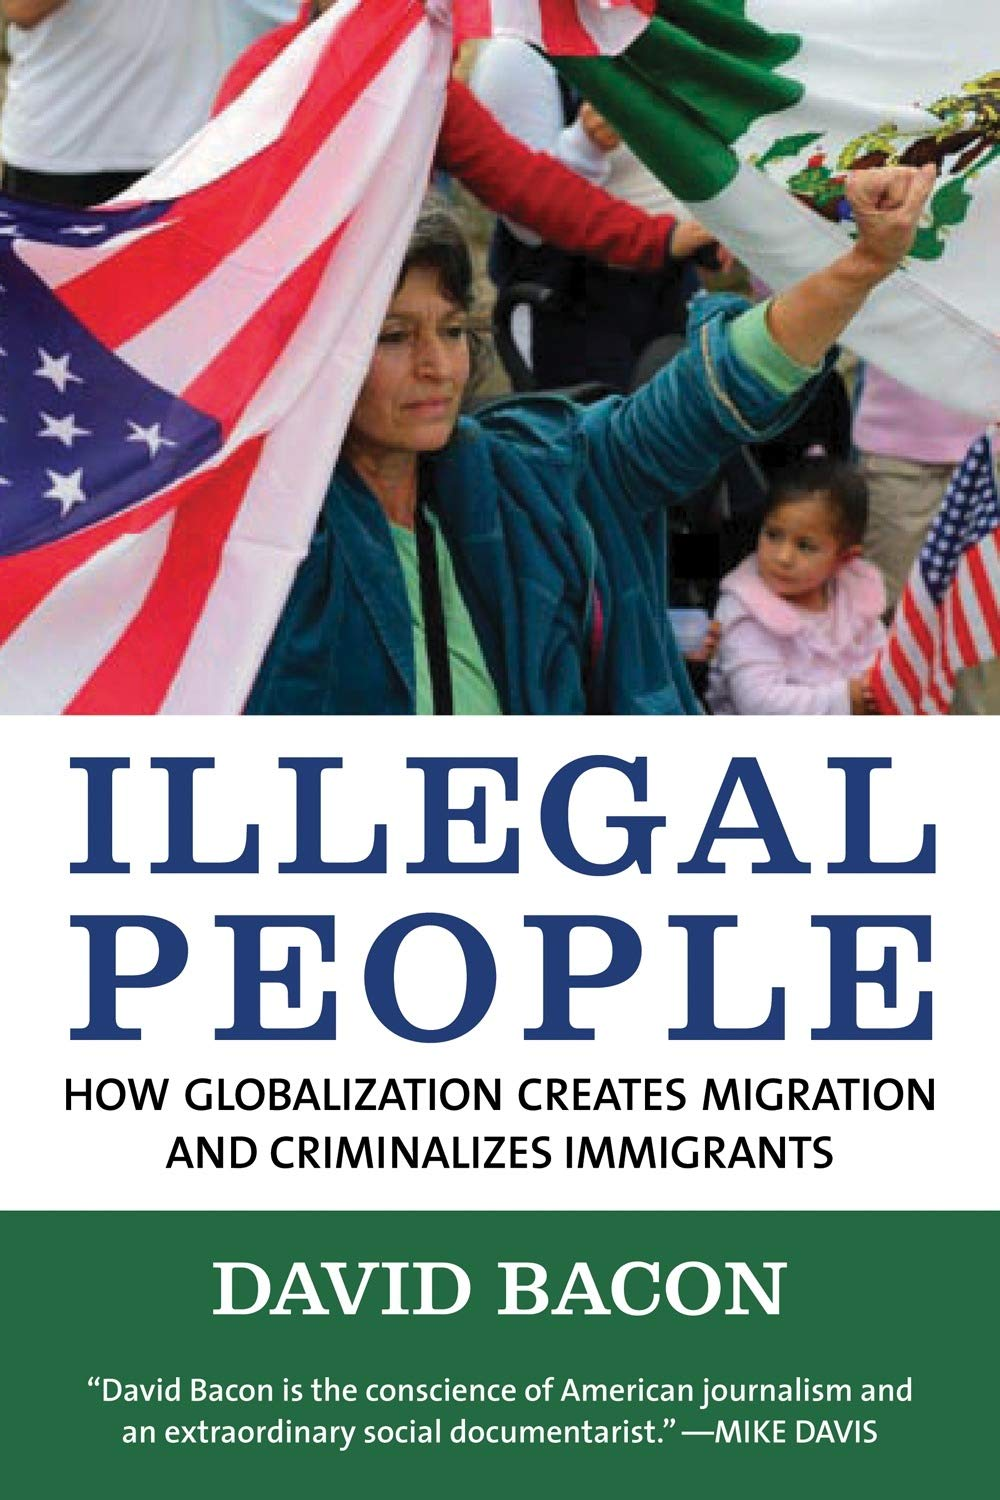 Illegal People: How Globalization Creates Migration and Criminalizes Immigrants ebook